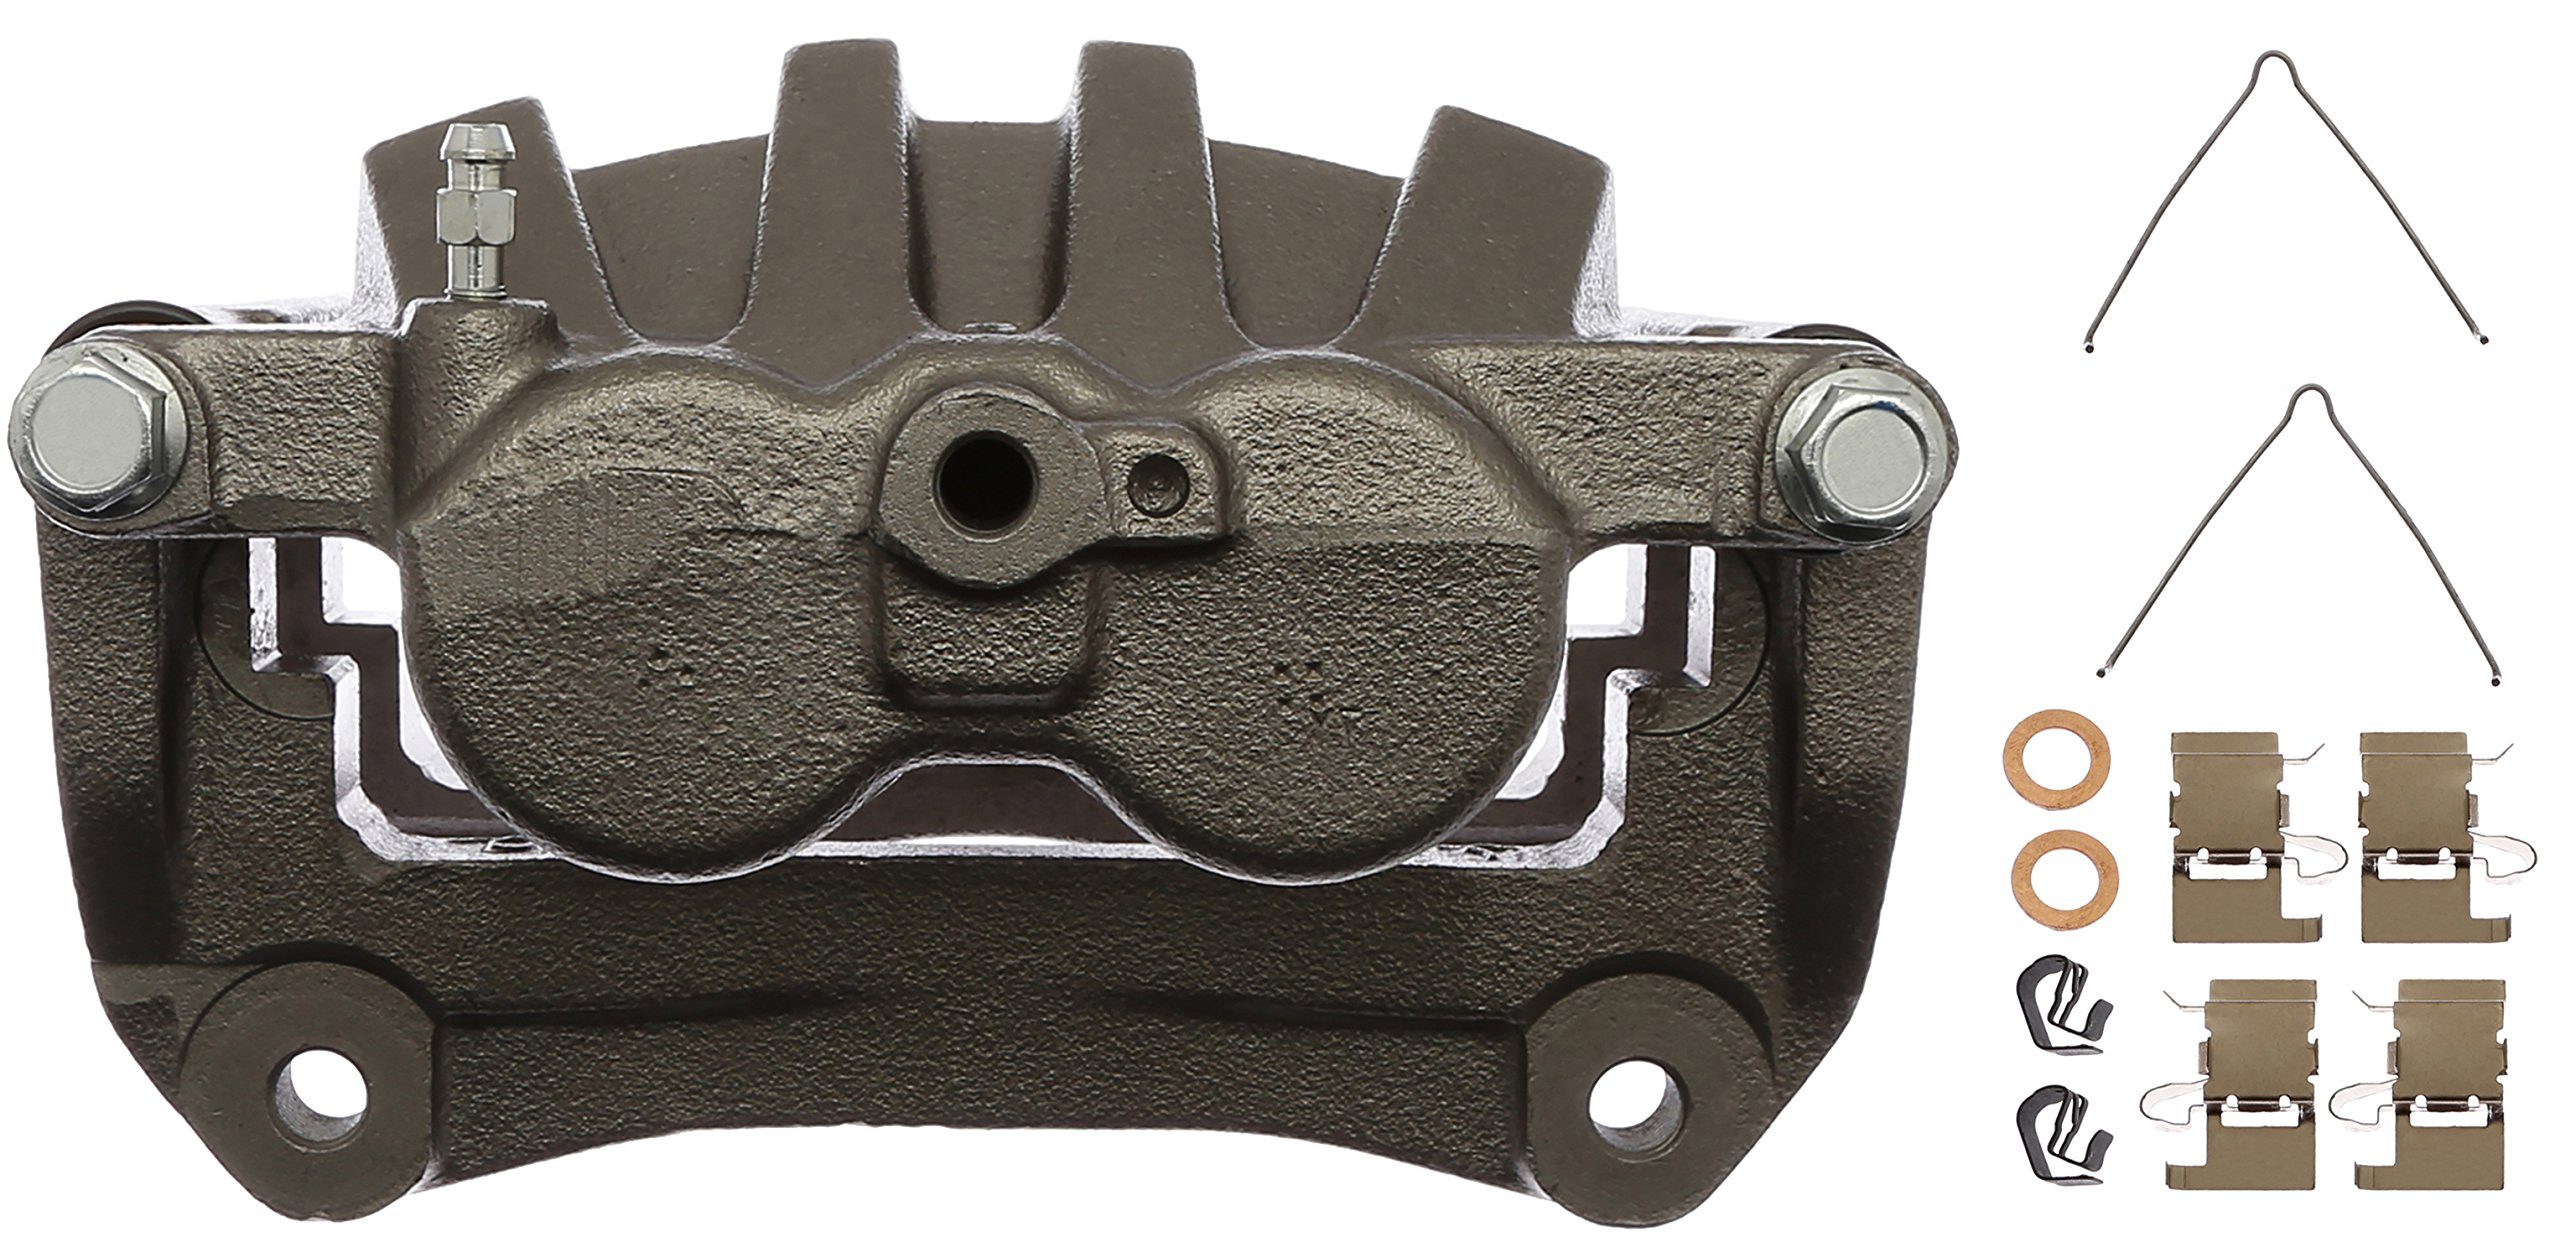 ACDelco 18FR11973 Professional Front Driver Side Disc Brake Caliper Assembly without Pads, Remanufactured